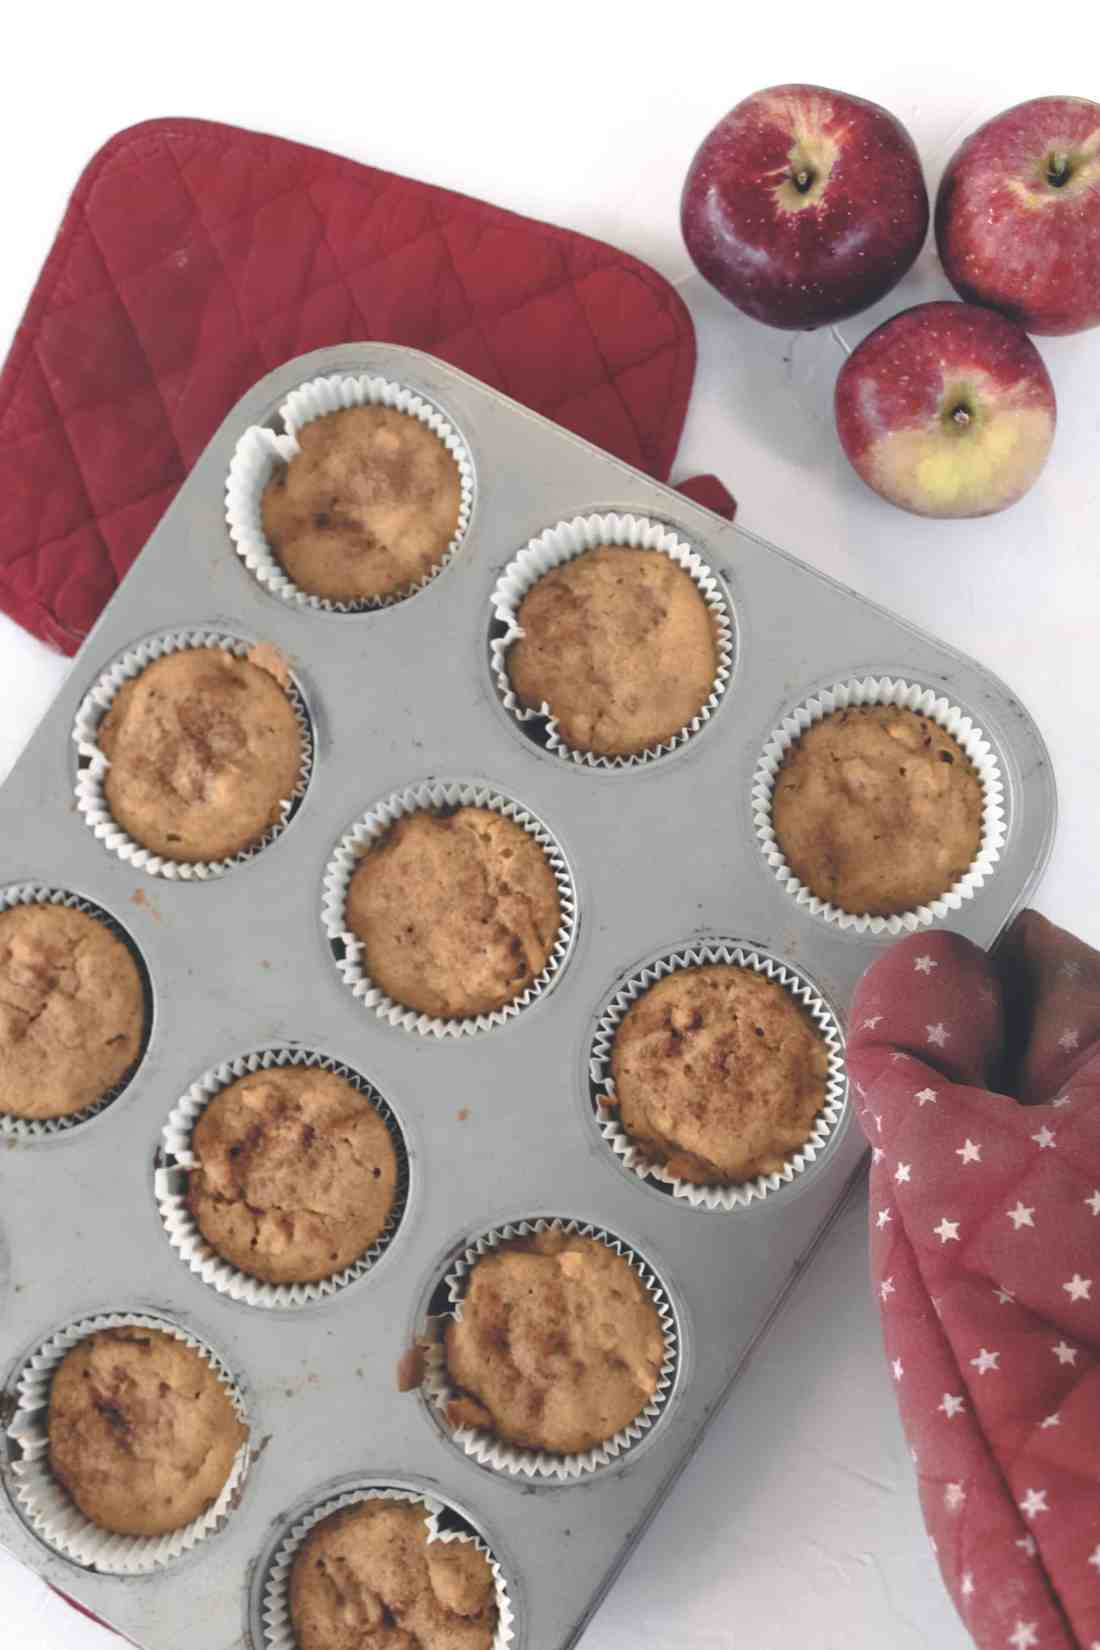 These gluten free pumpkin apple muffins are vegan, naturally sweetened, & take less than 35 minutes to make. Makes for a great breakfast, snack, or dessert!